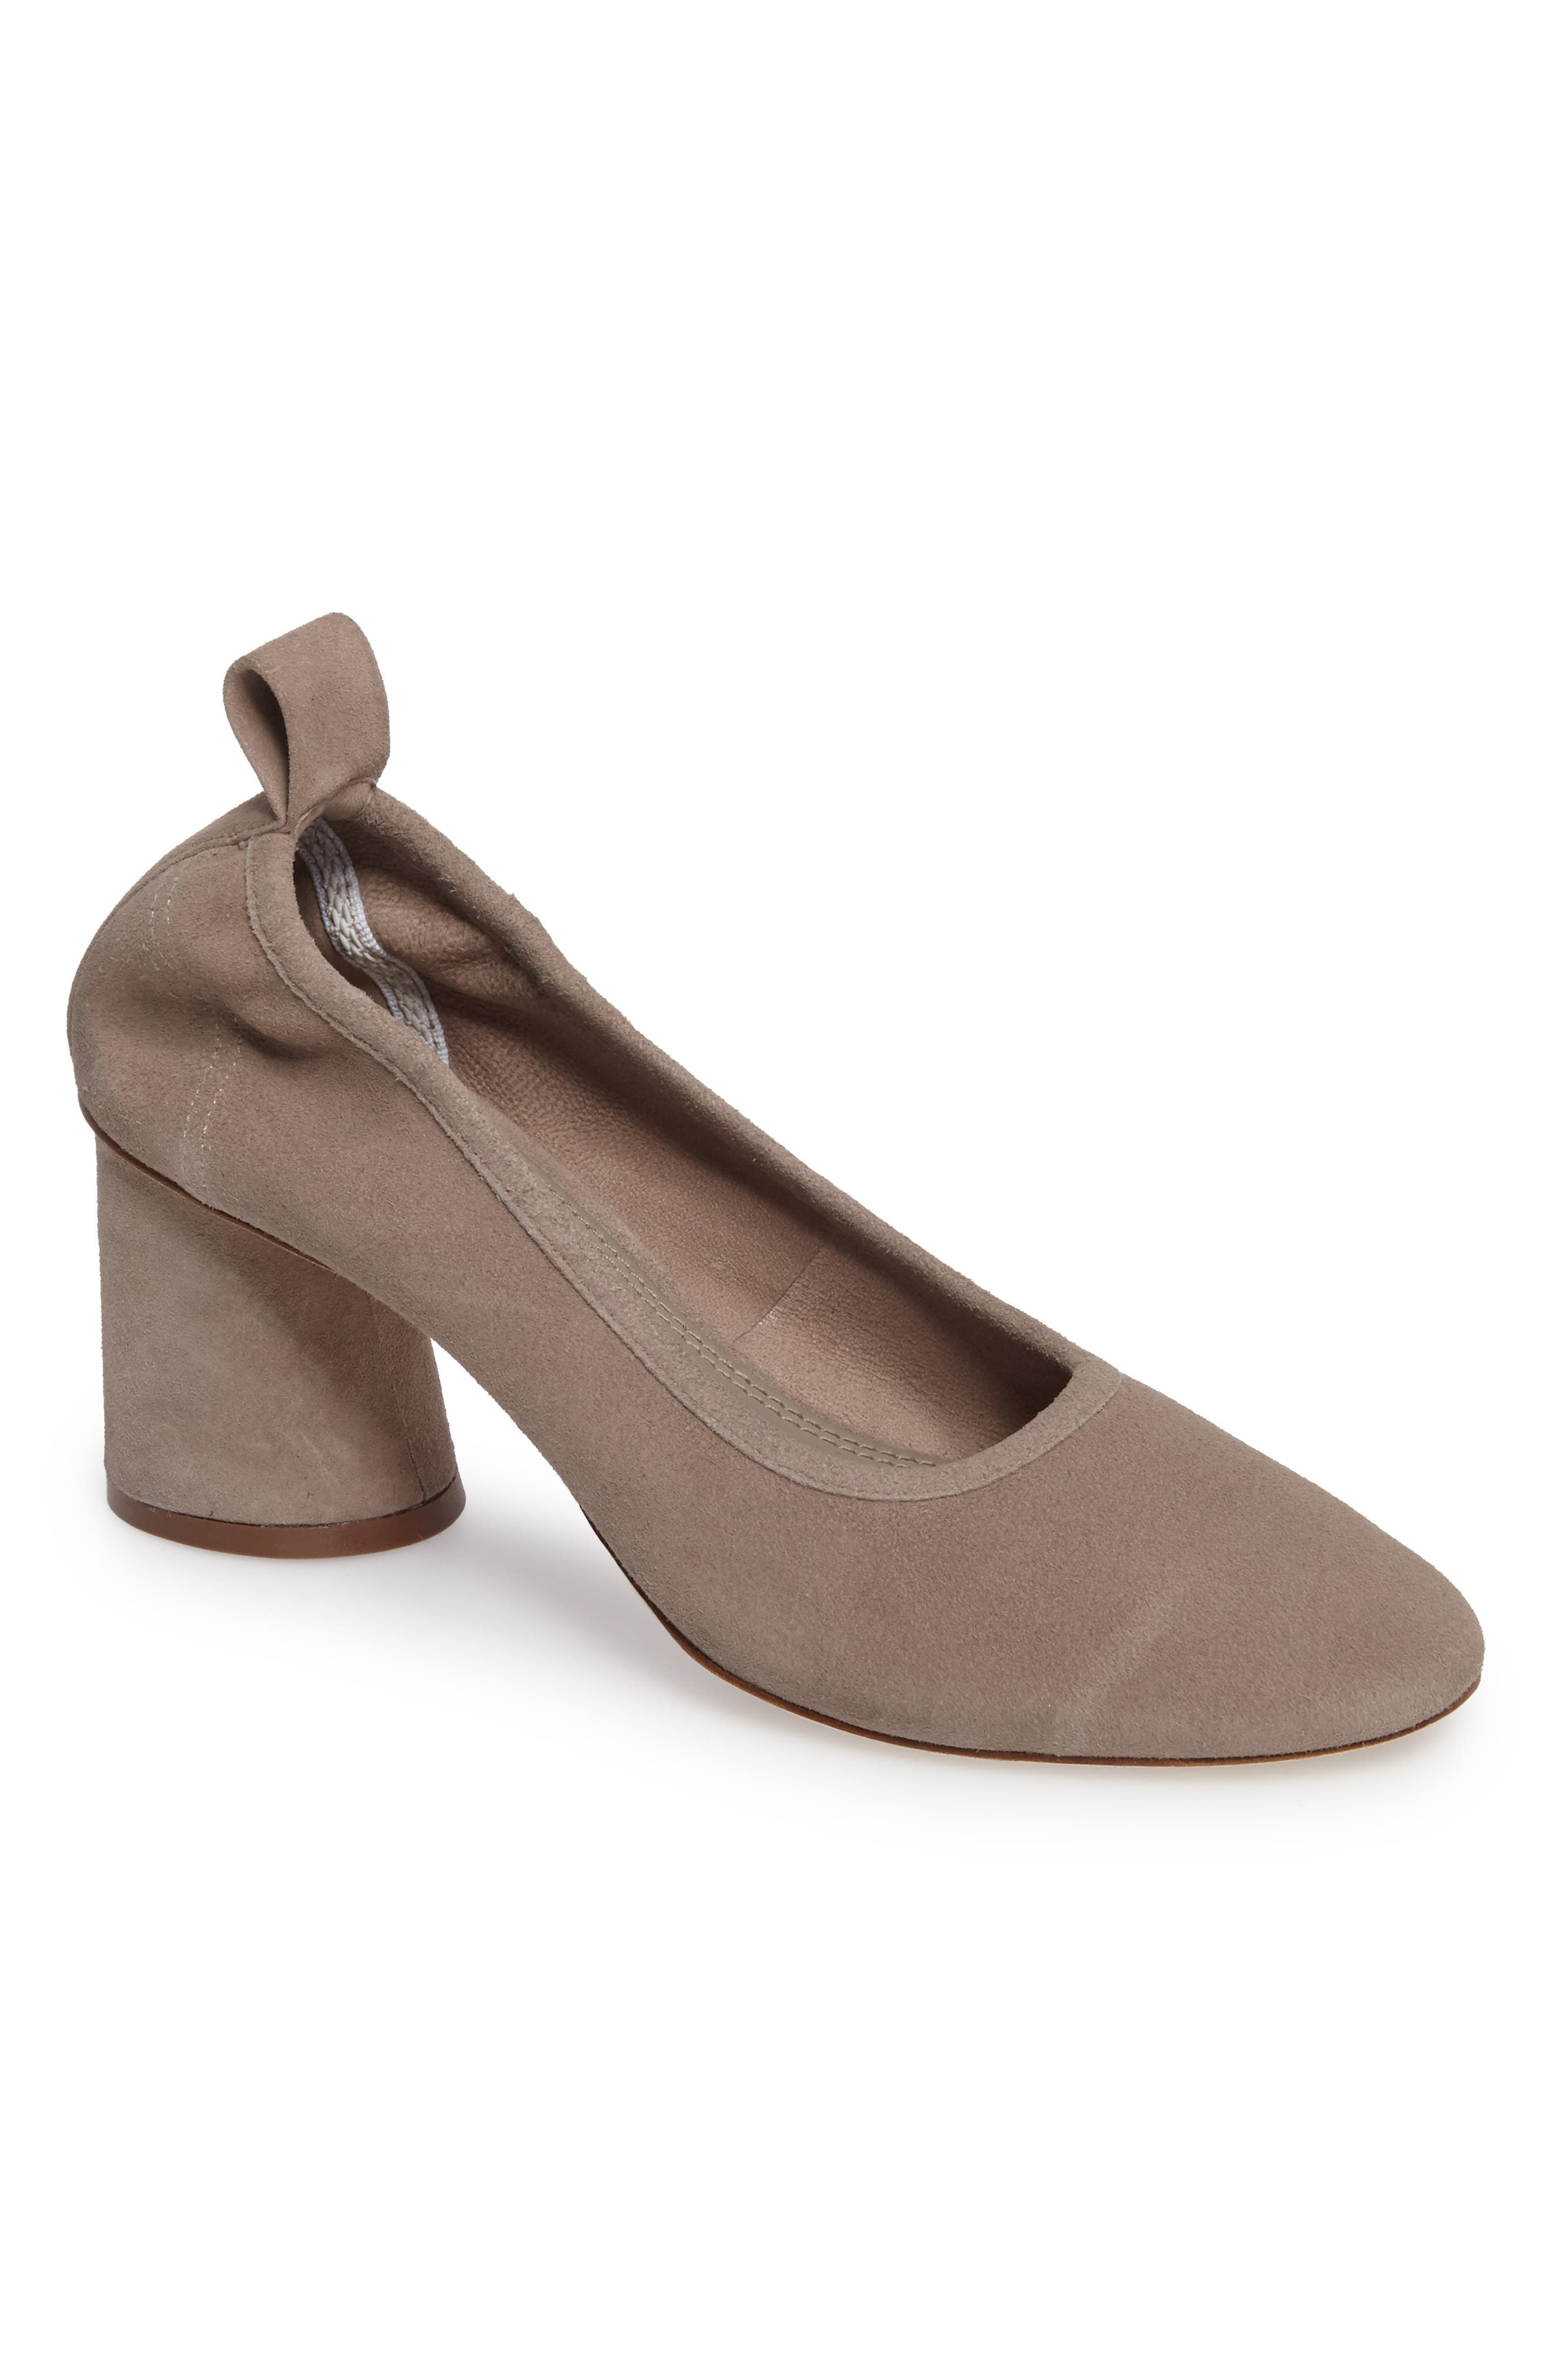 Therese Statement Heel Pump,                         Main,                         color, Duststorm